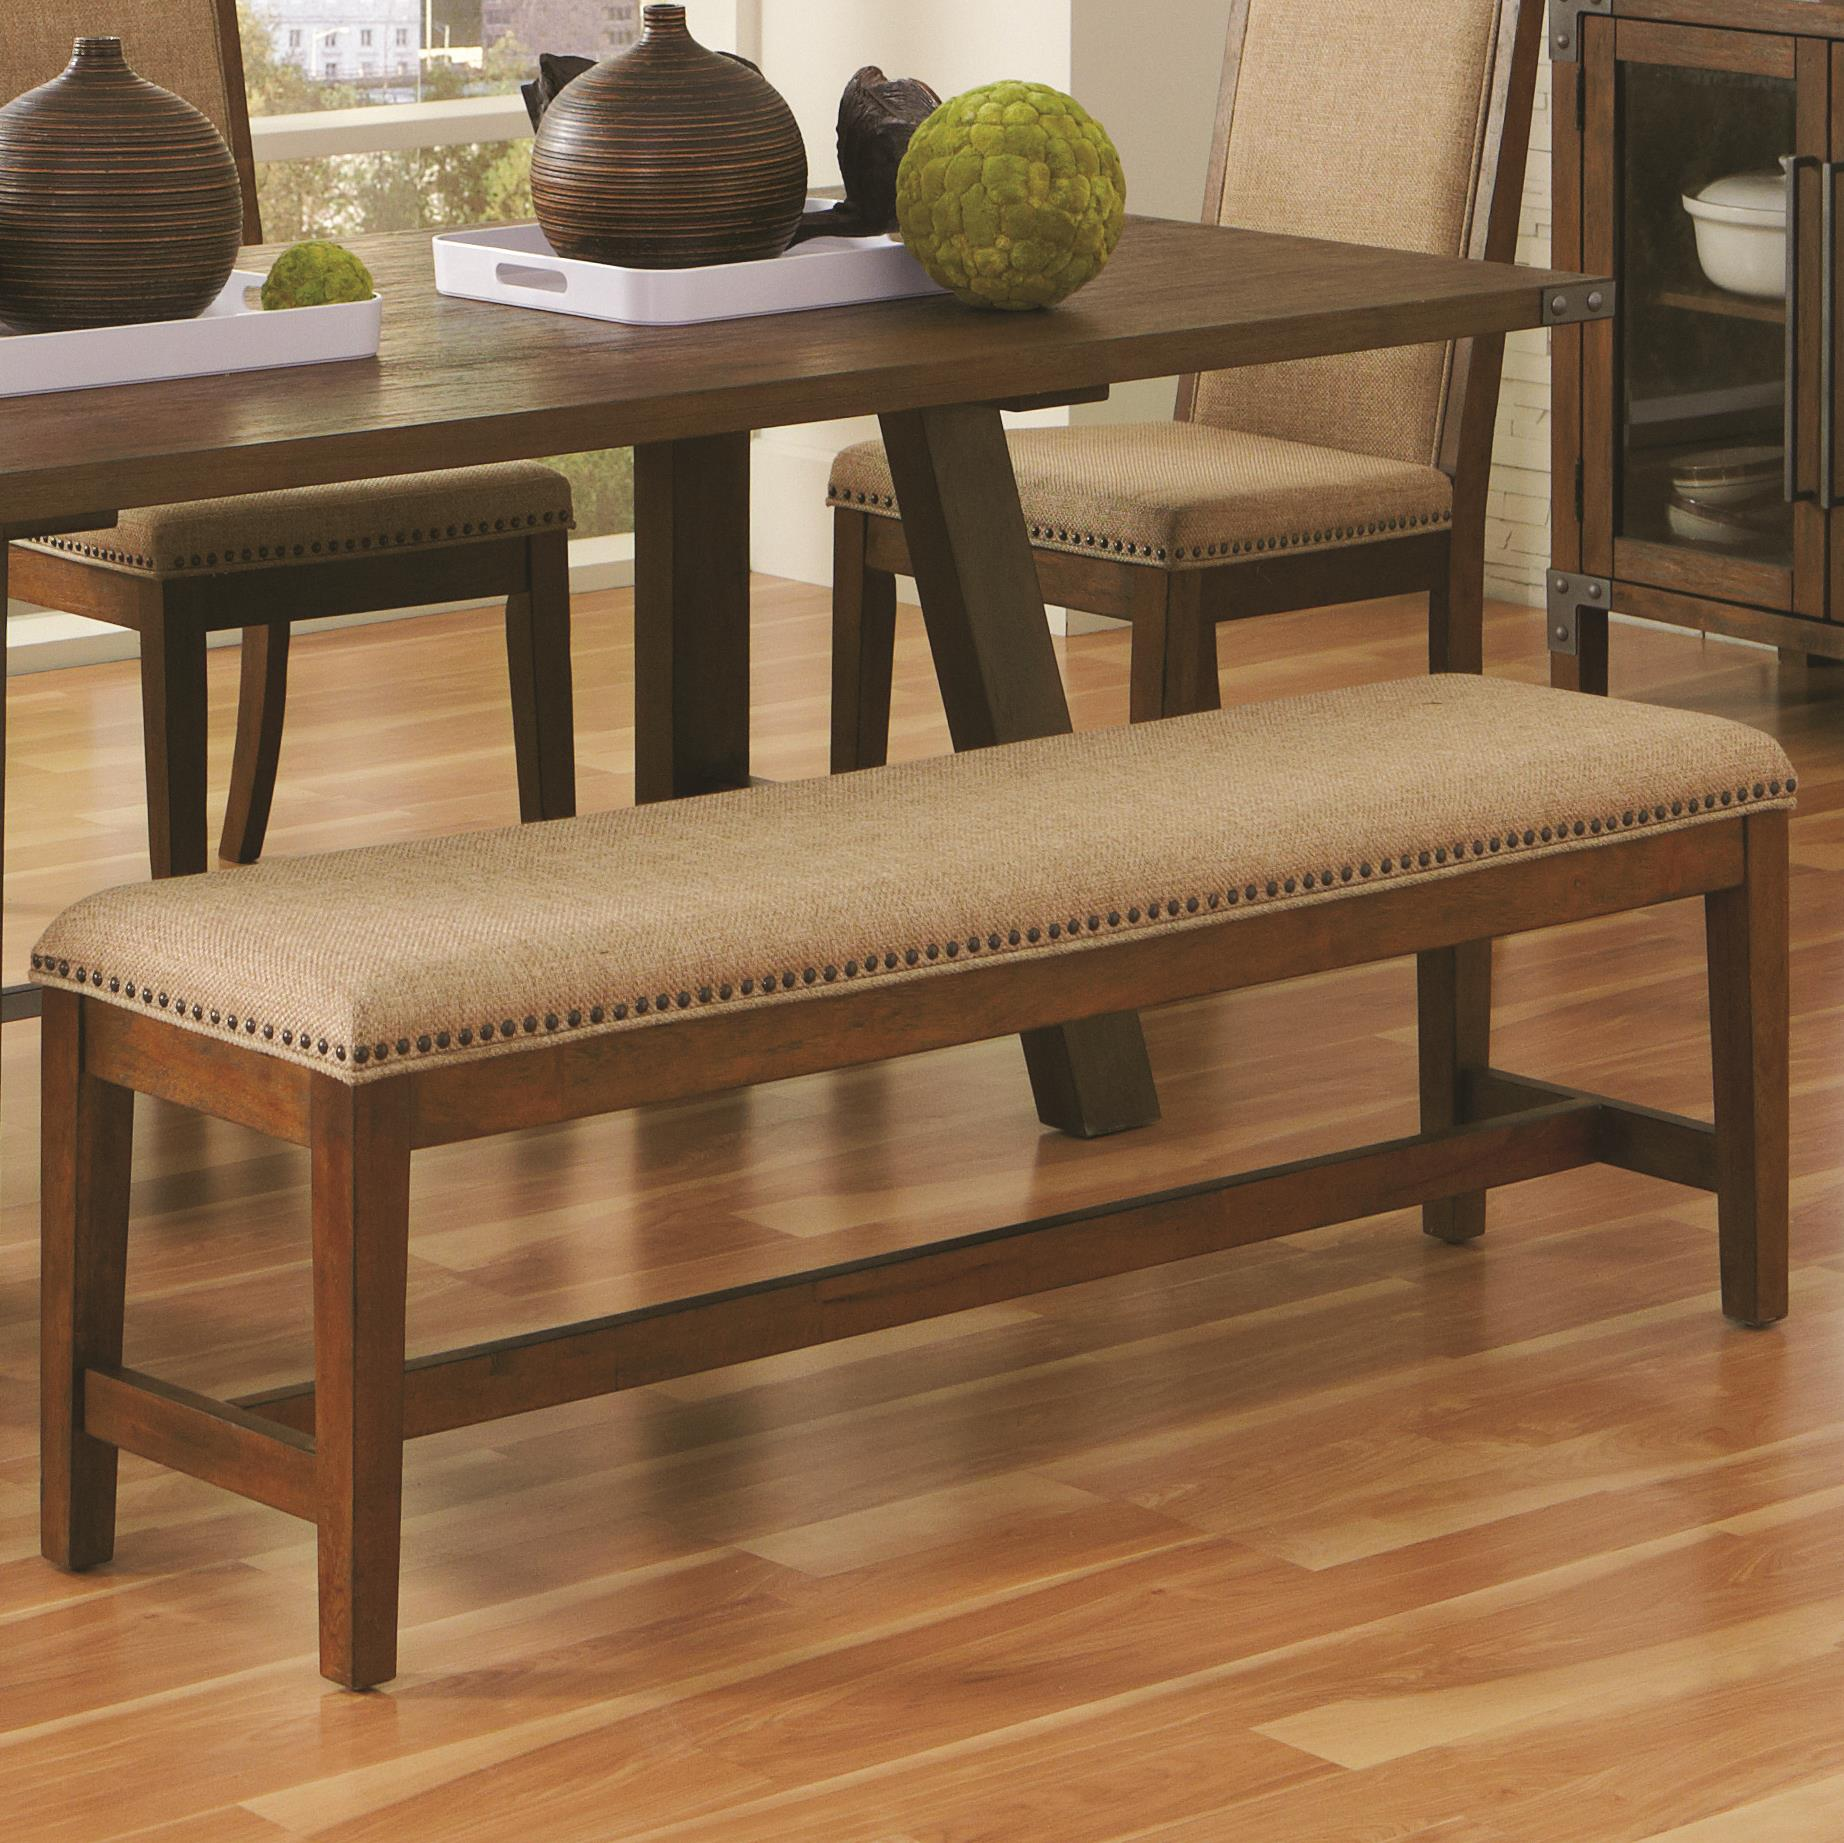 Coaster Arcadia Upholstered Dining Bench - Item Number: 105683